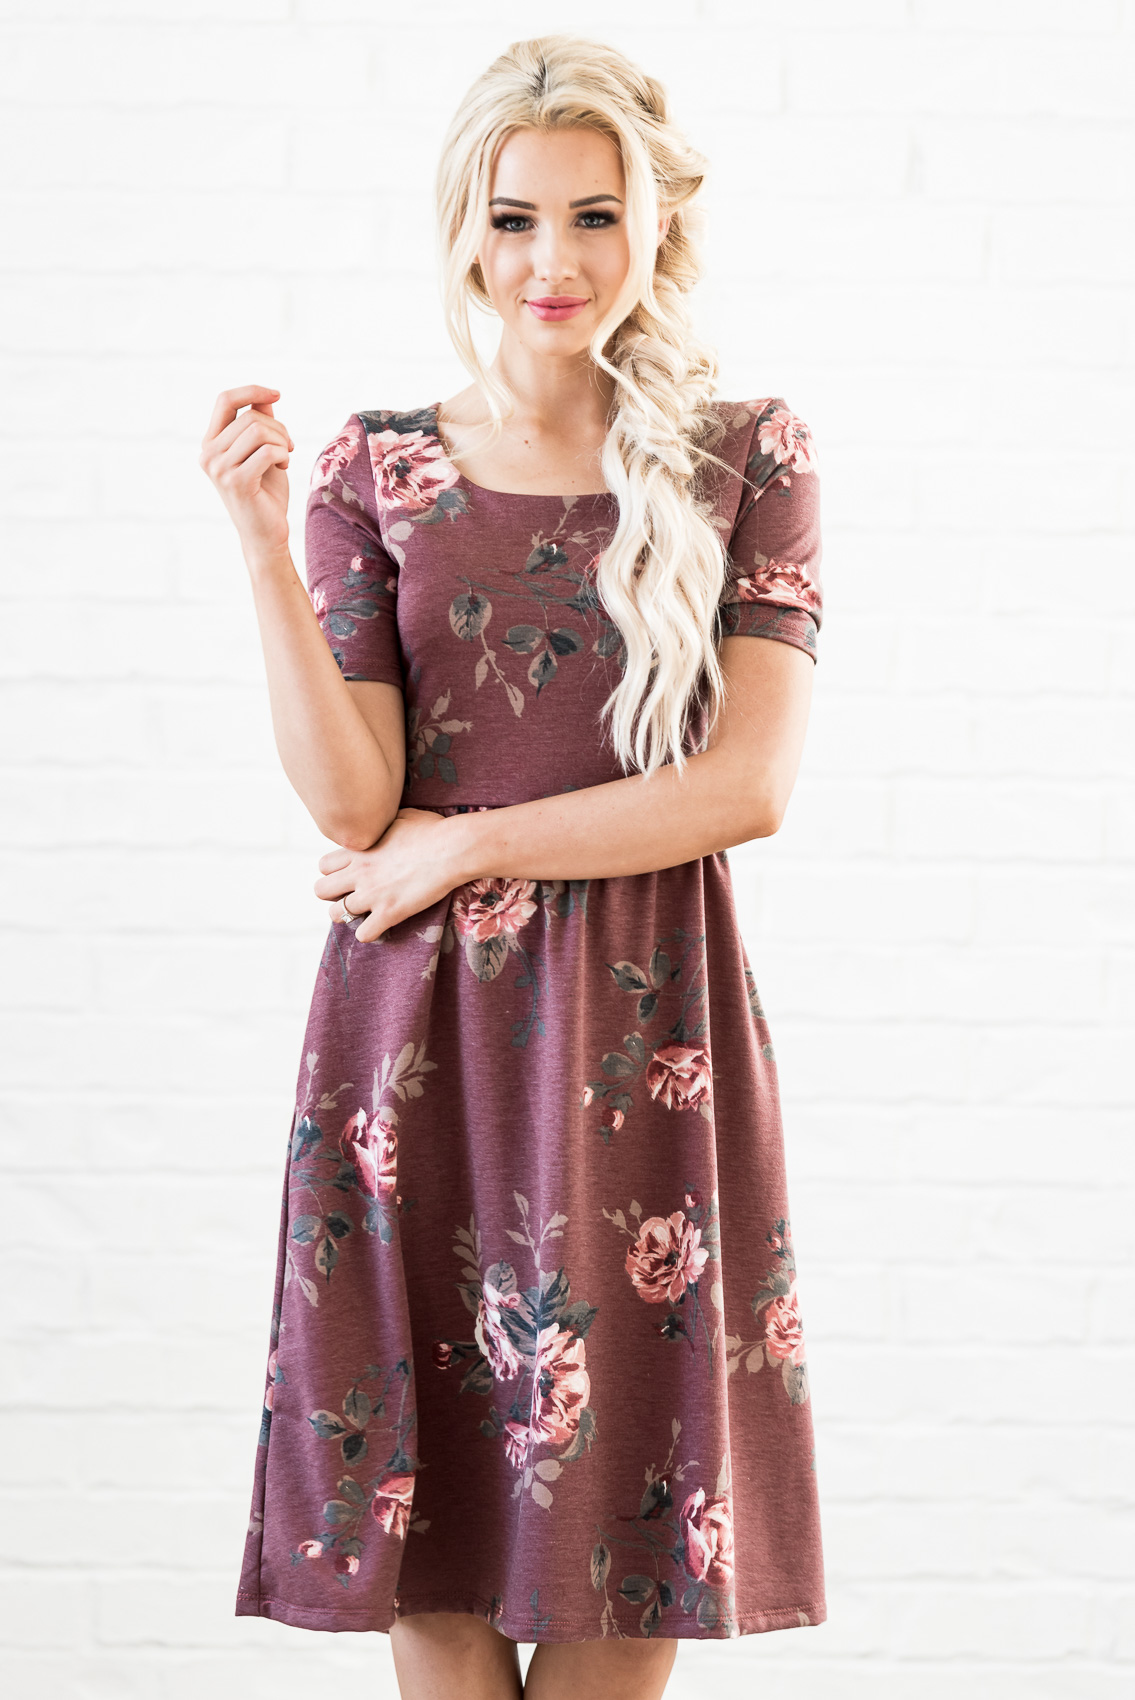 d9464980f6c5 ... Natalie Modest Dress in Red Bean (aka Dusty Burgundy or Maroon) with Floral  Print